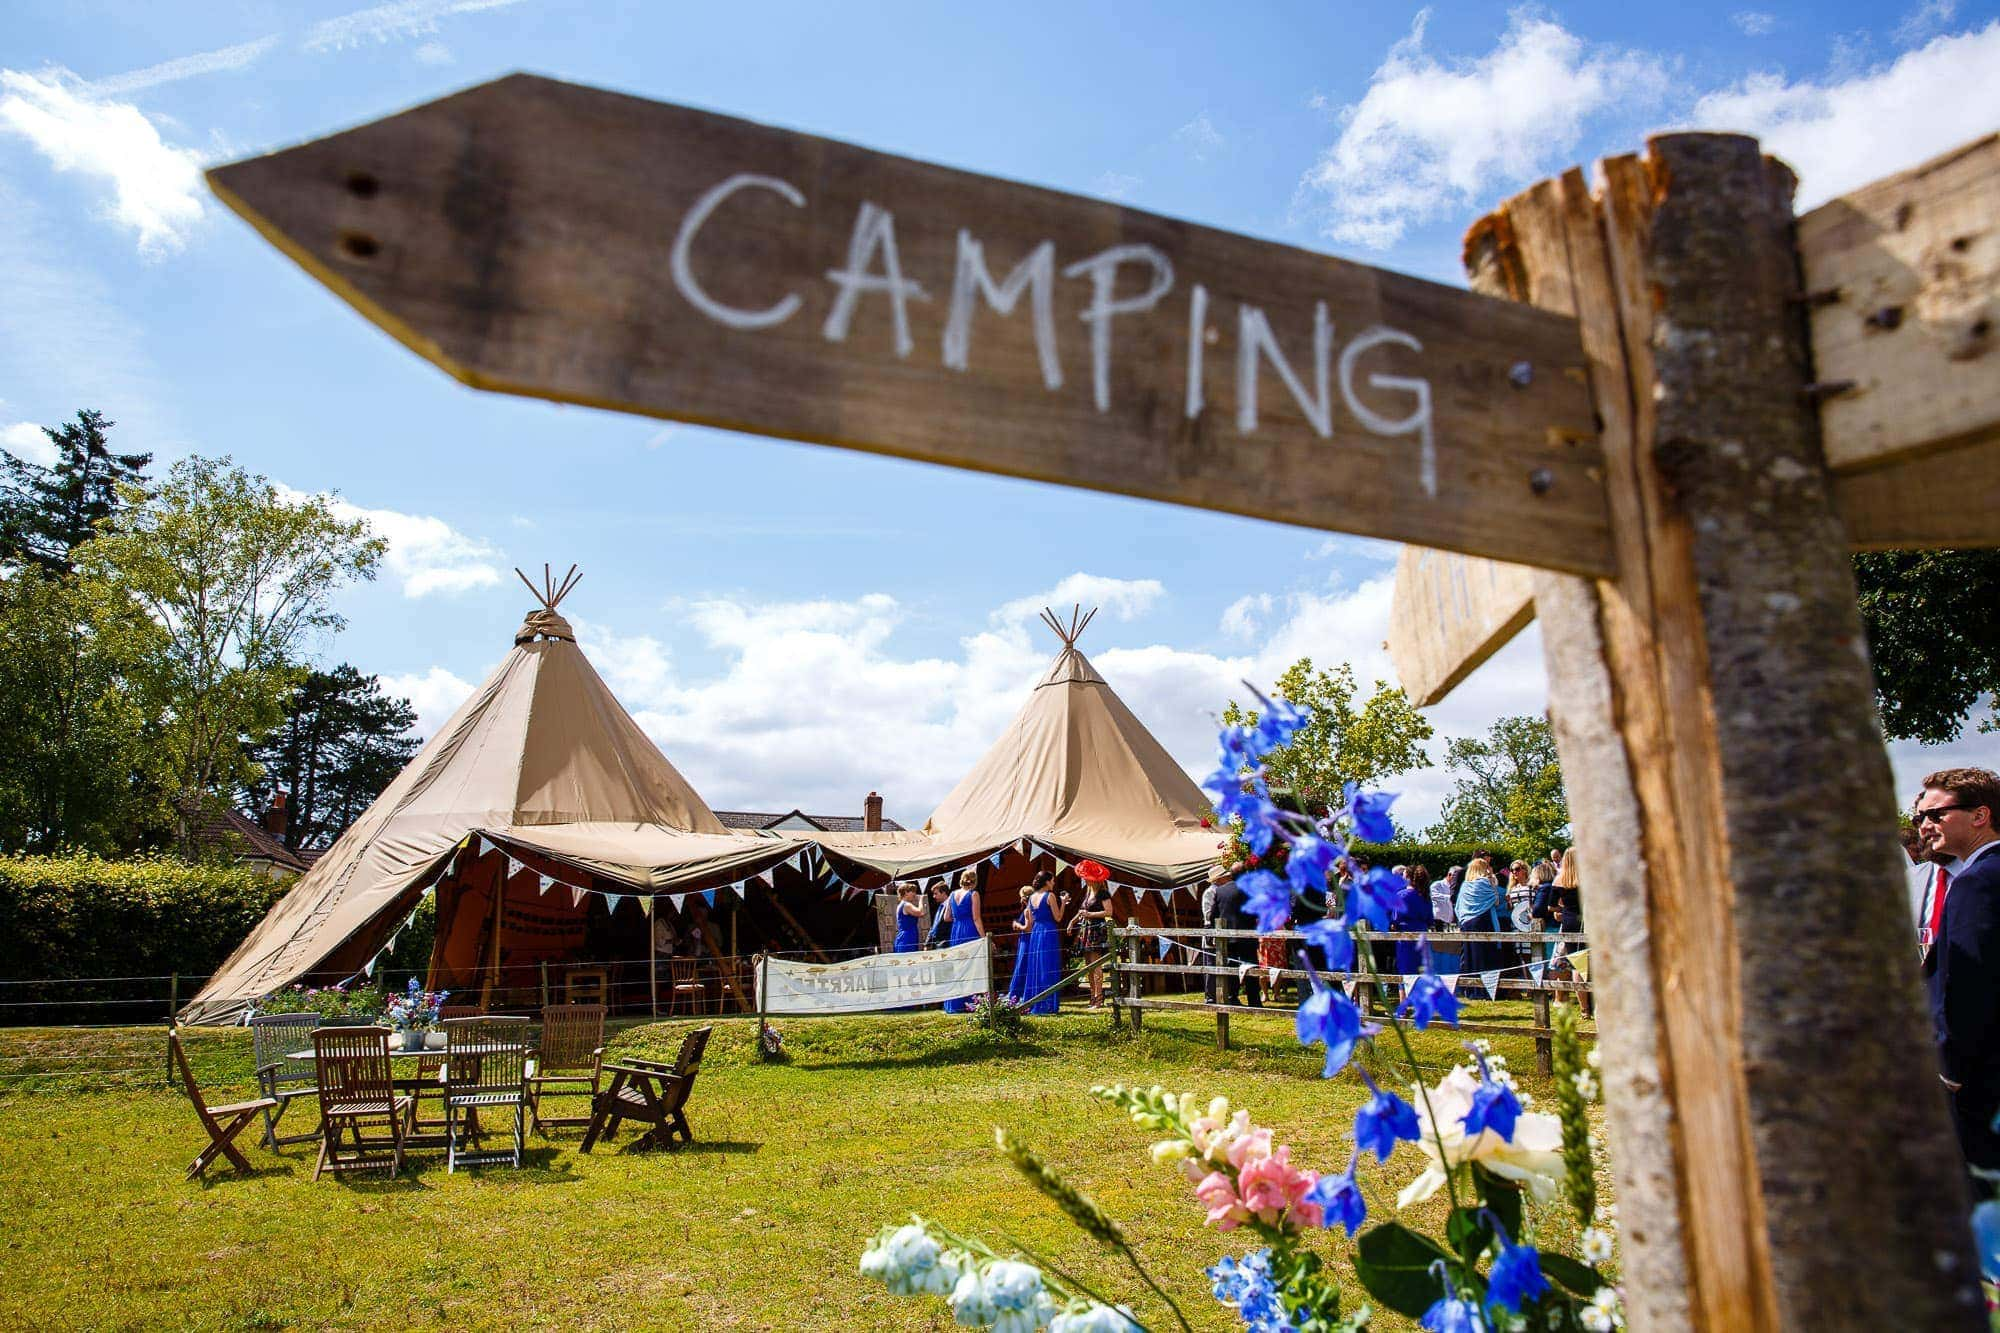 Tipi Wedding Hampshire - with homemade Camping Sign